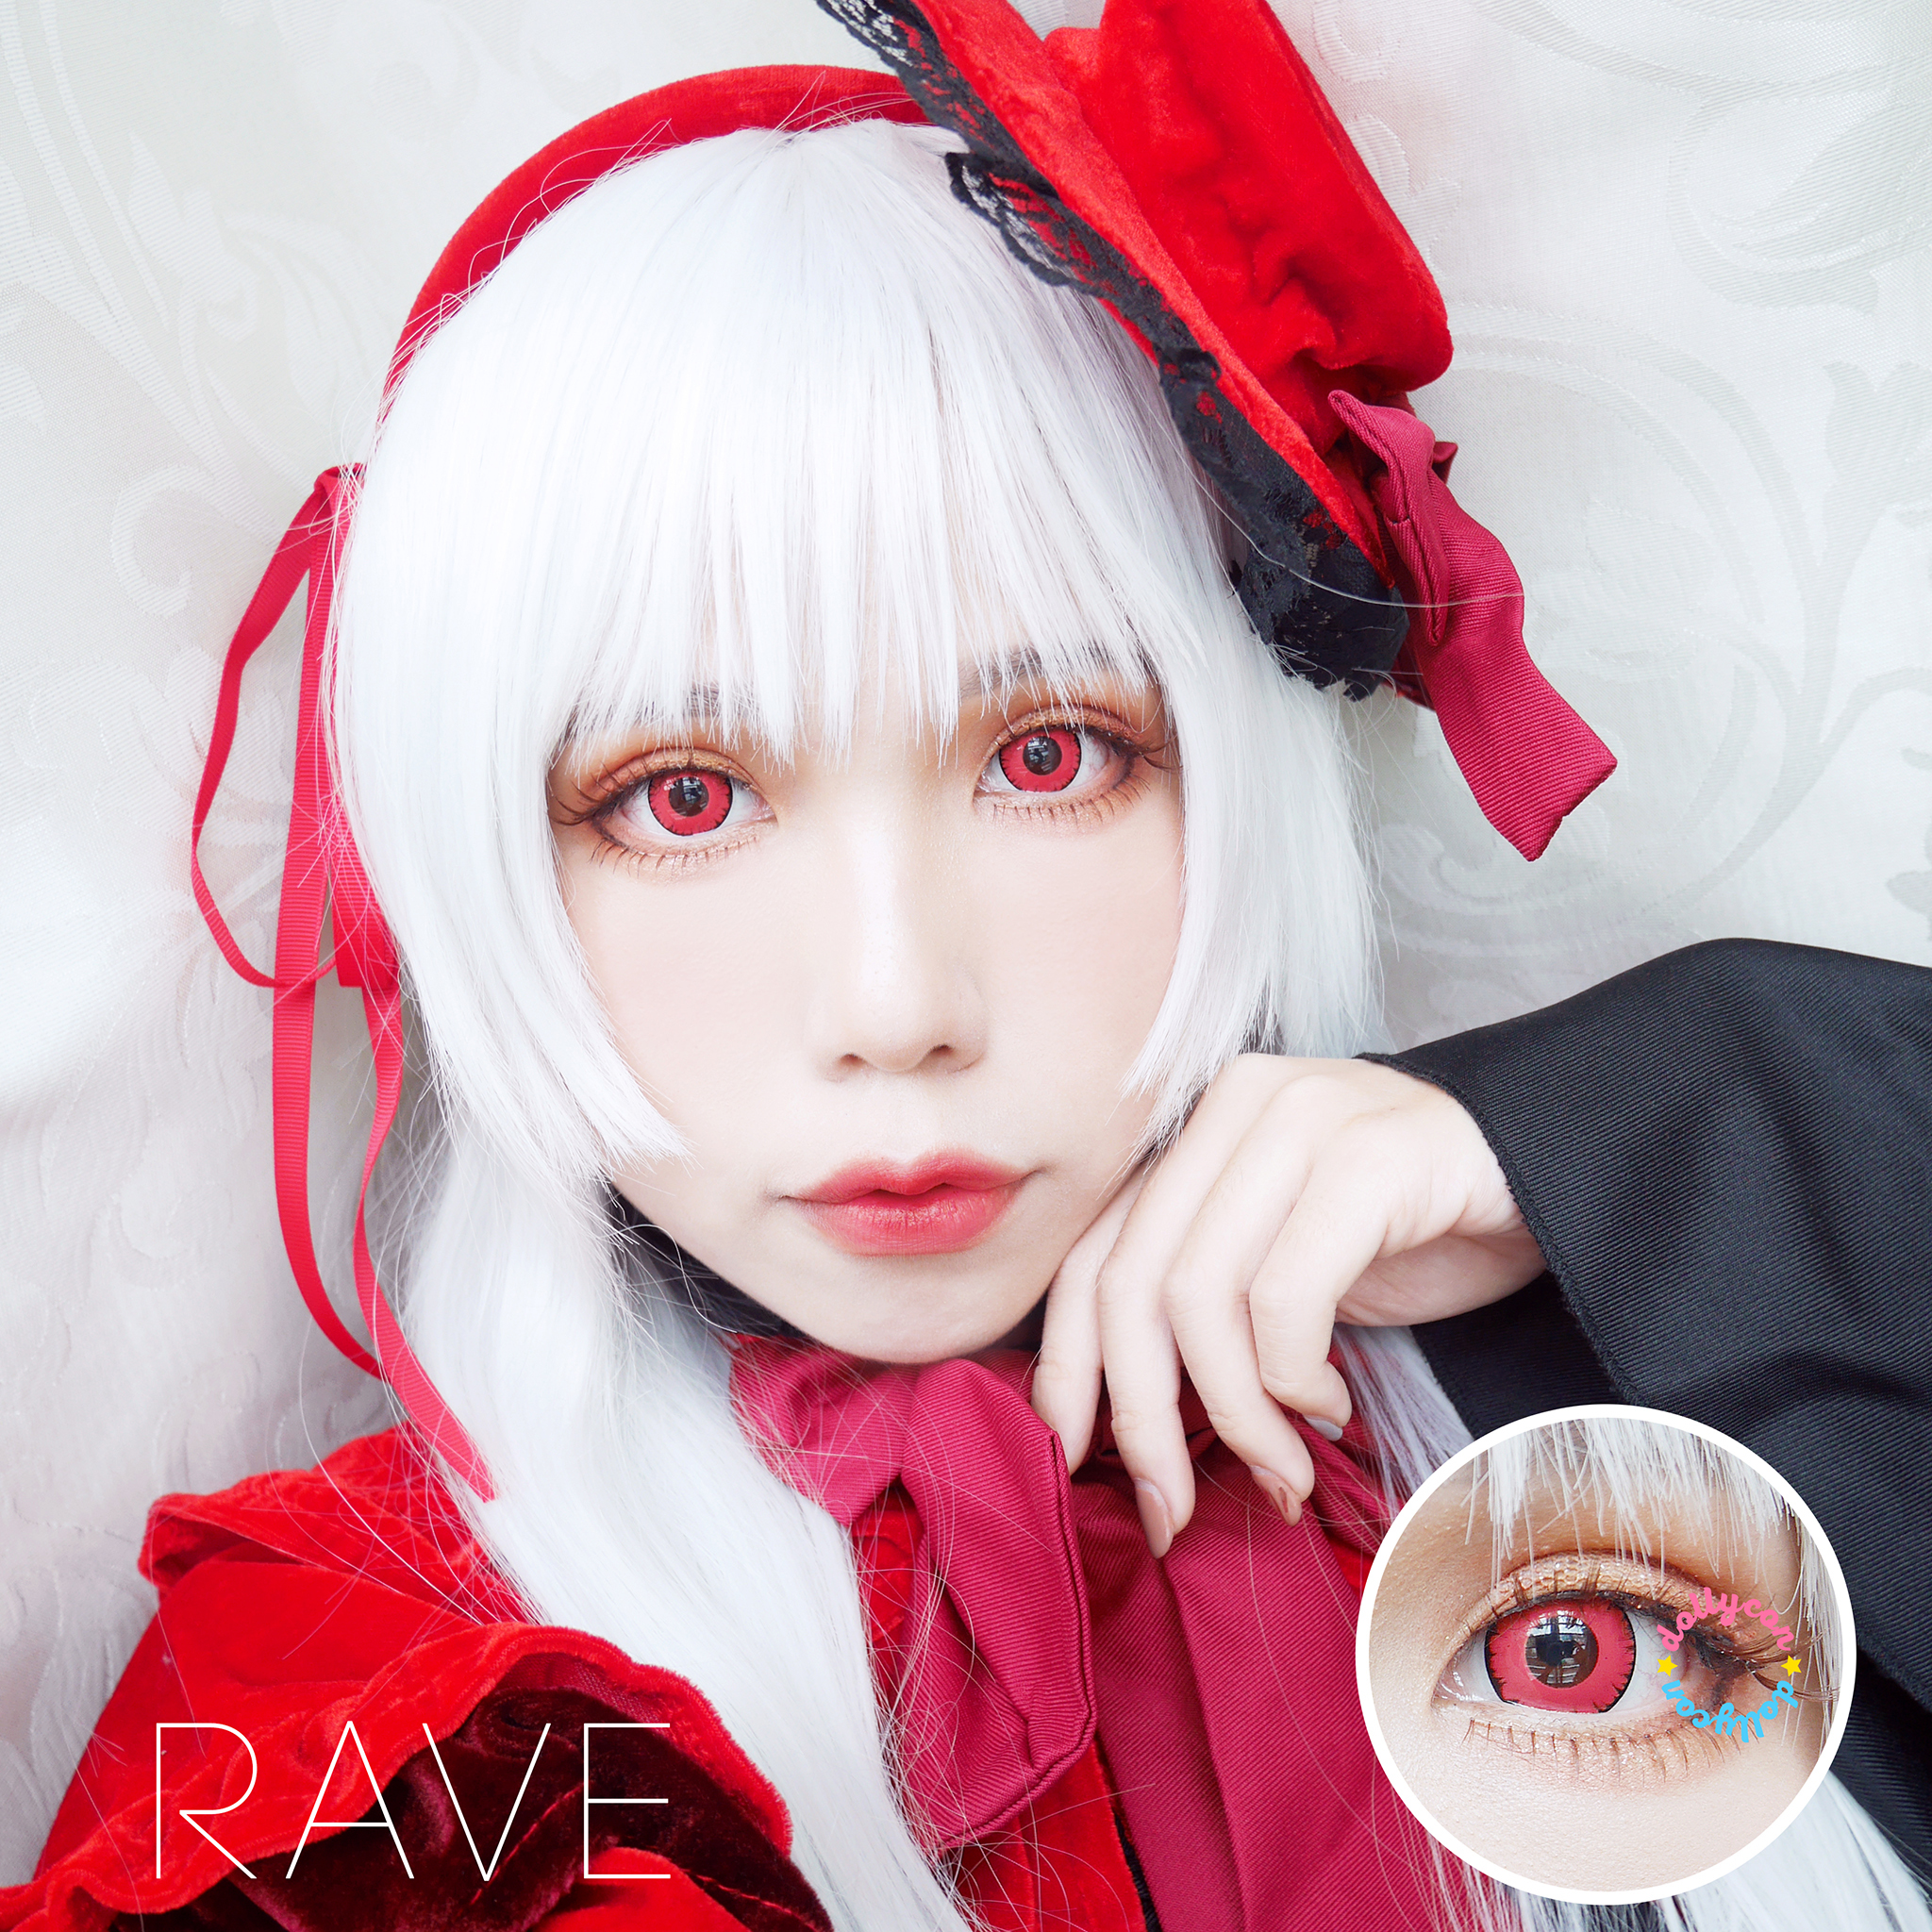 Rave Red (2)a1.jpg